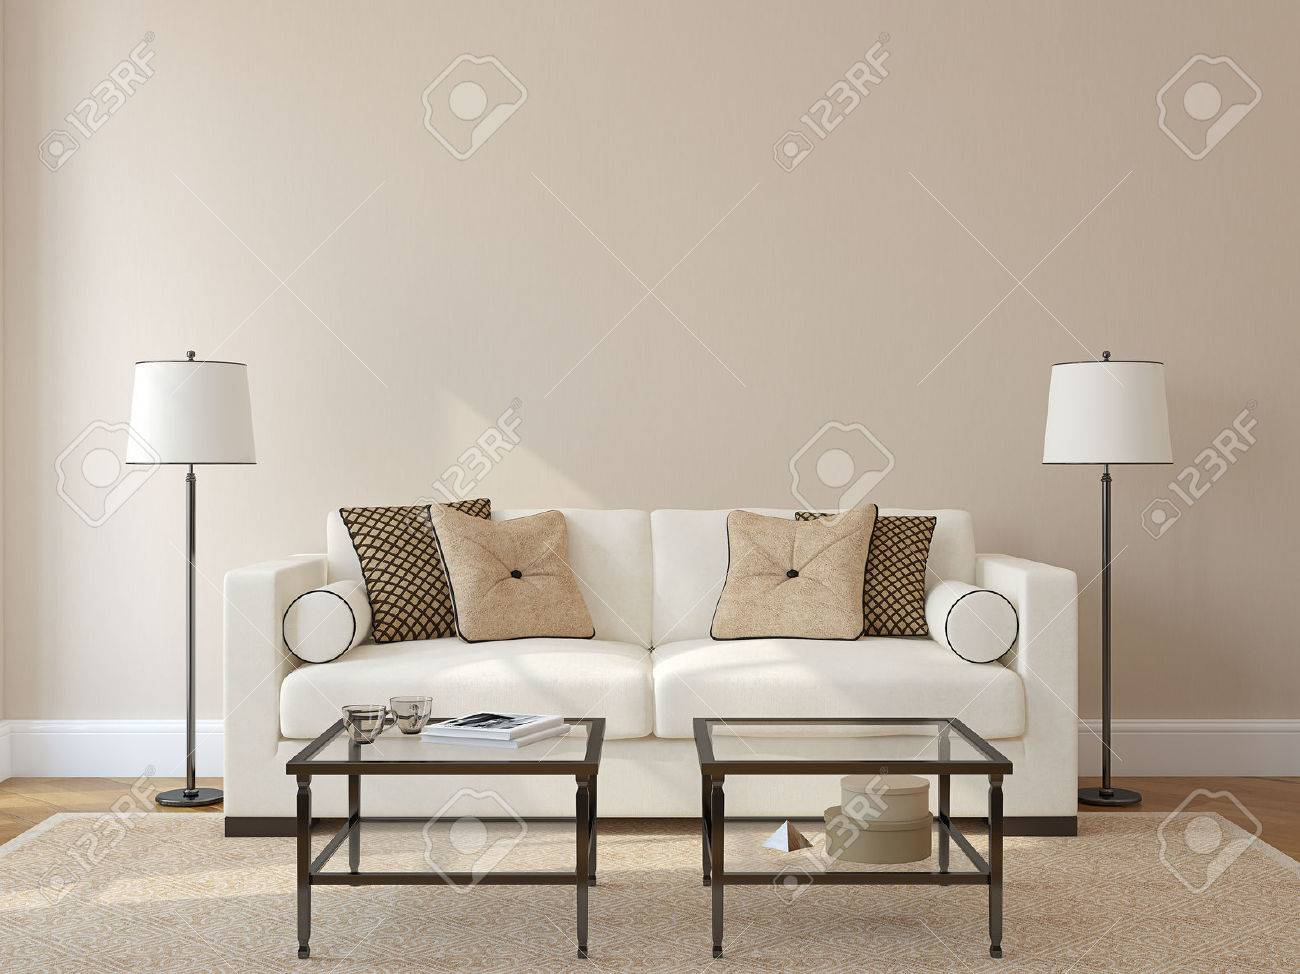 Modern living-room interior with white couch near empty beige wall. 3d render. Photo on book cover was made by me. - 47011268